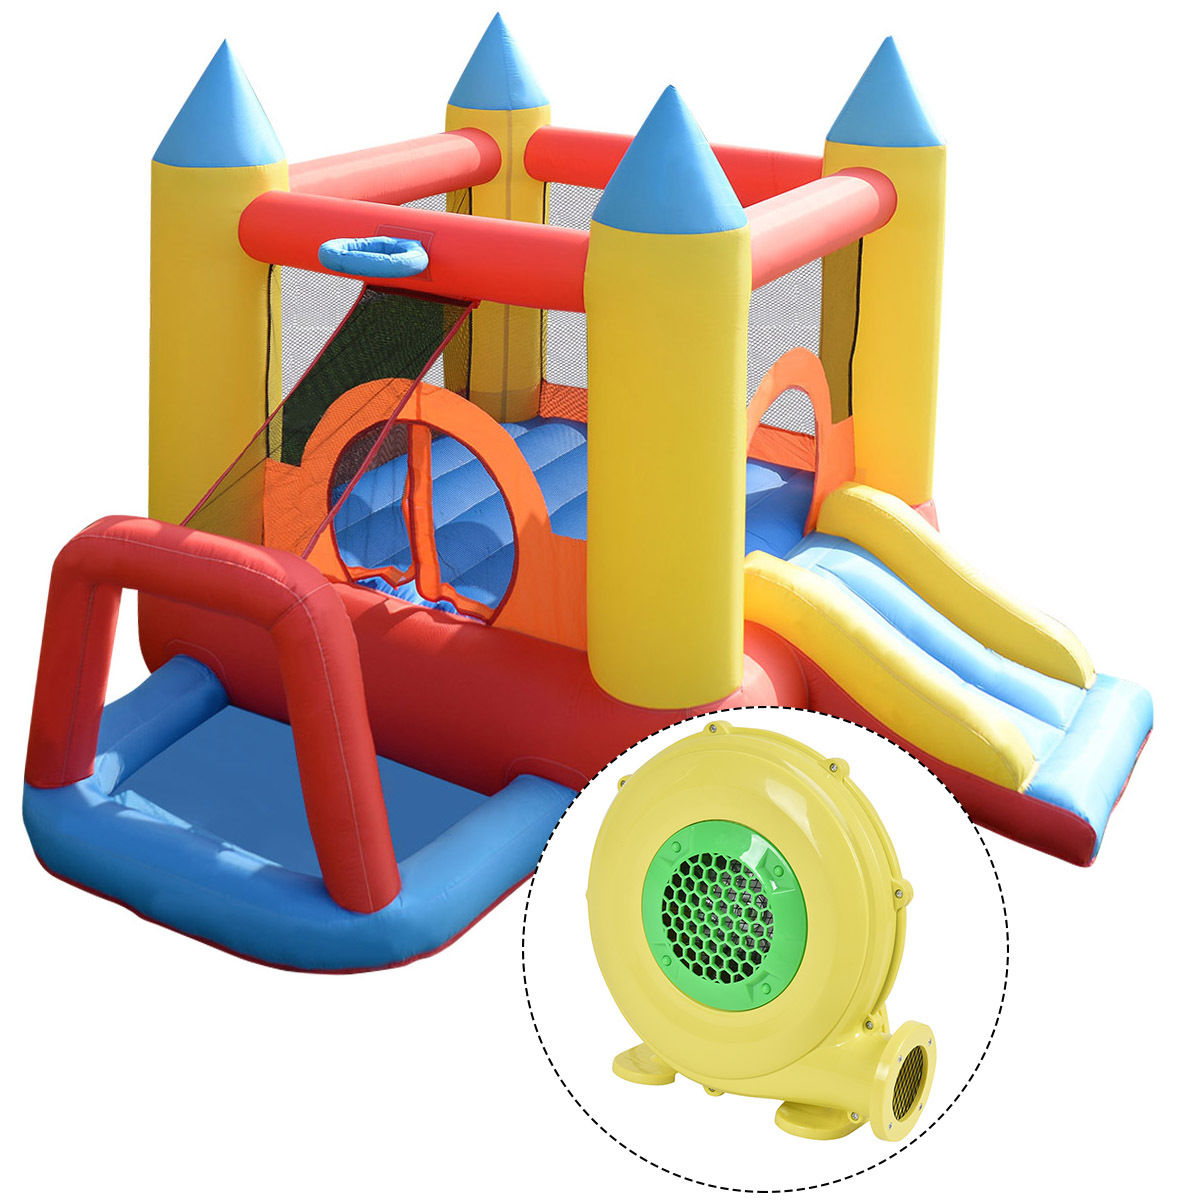 Costway Inflatable Mighty Bounce House Jumper Castle Moonwalk Slide w/480W Blower